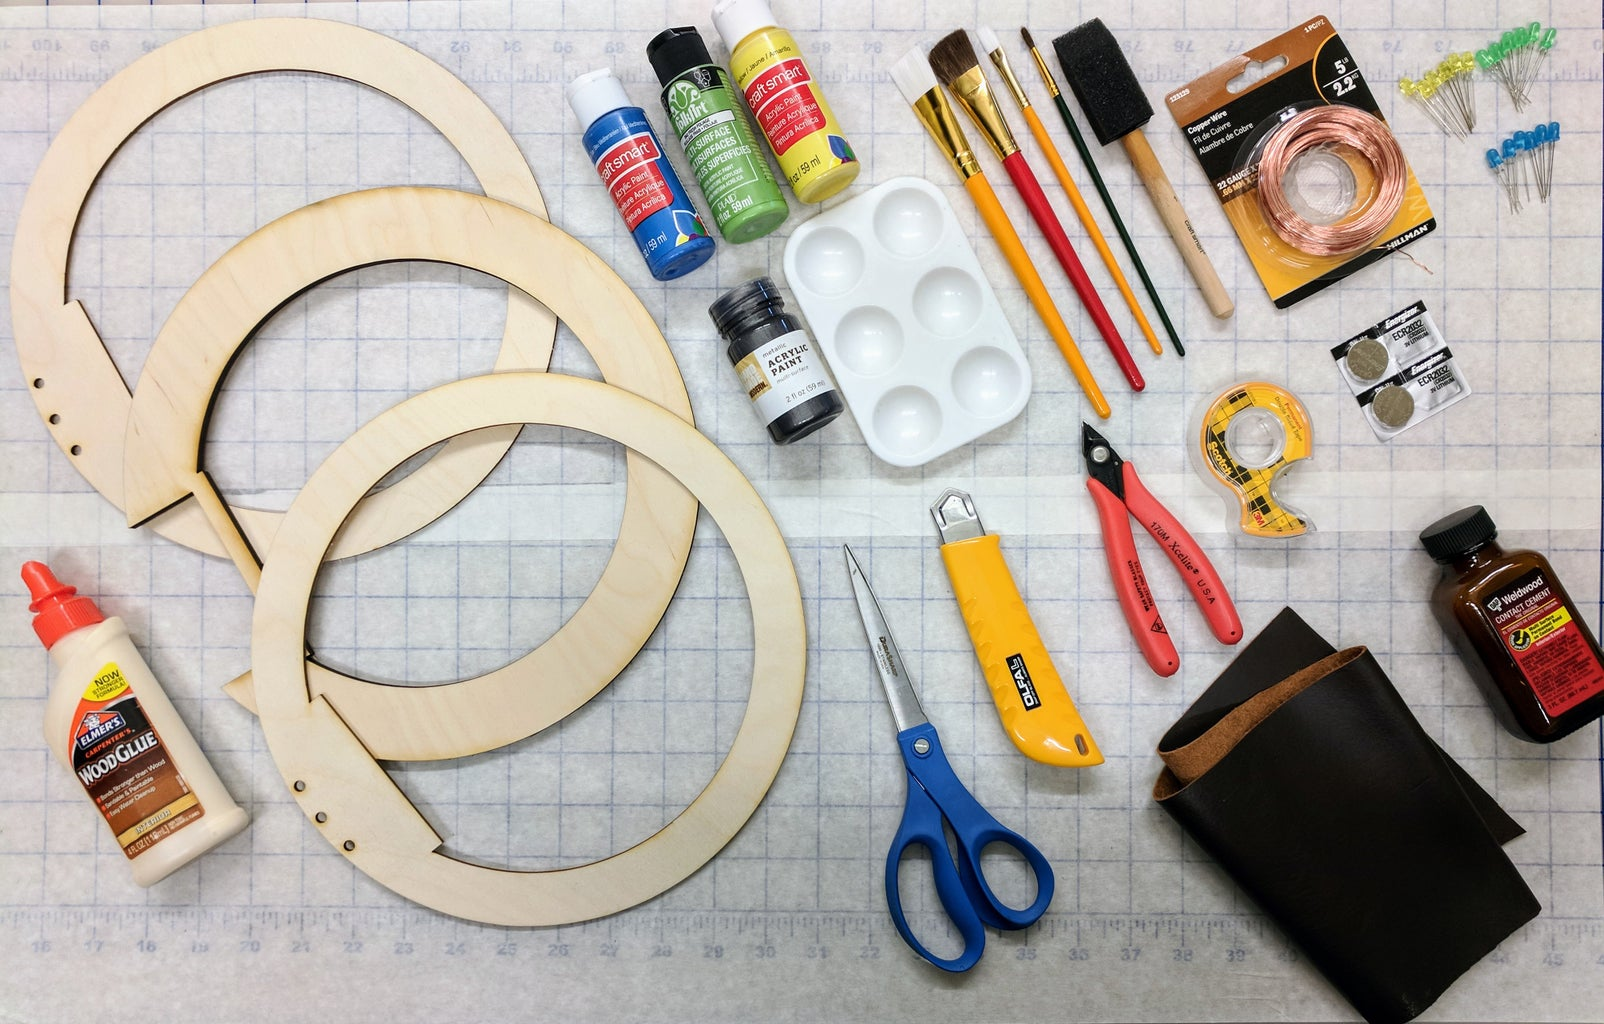 Extra Credit   Assemble Ring Blade Parts and Tools